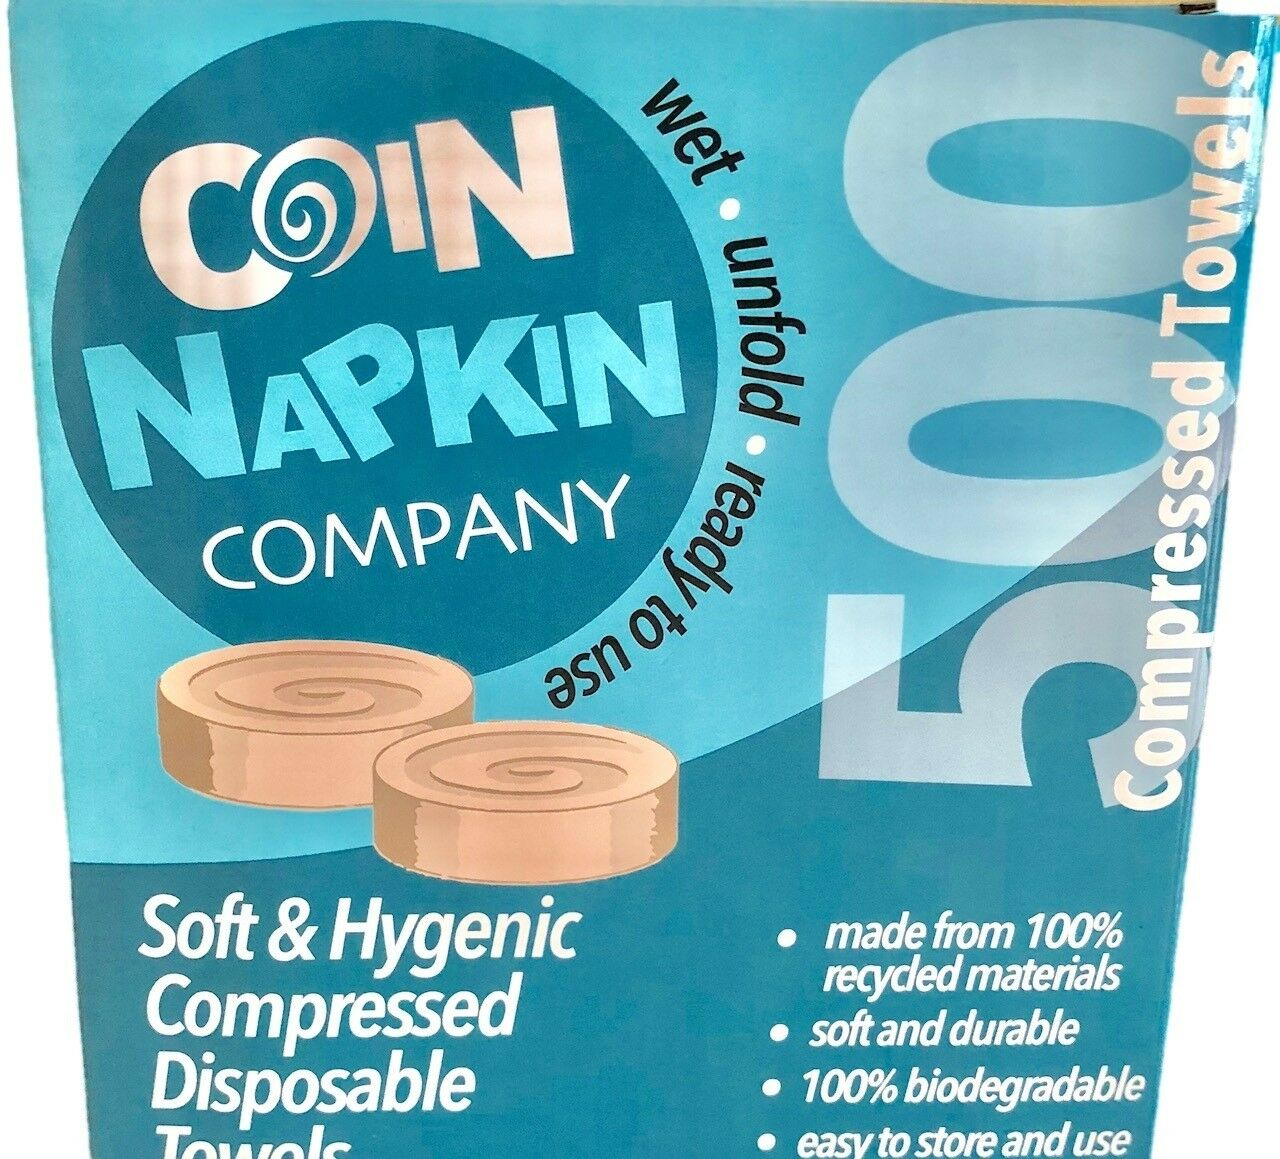 Compressed disposable napkins tableware Linen Coin Wet tissue magic novelty new